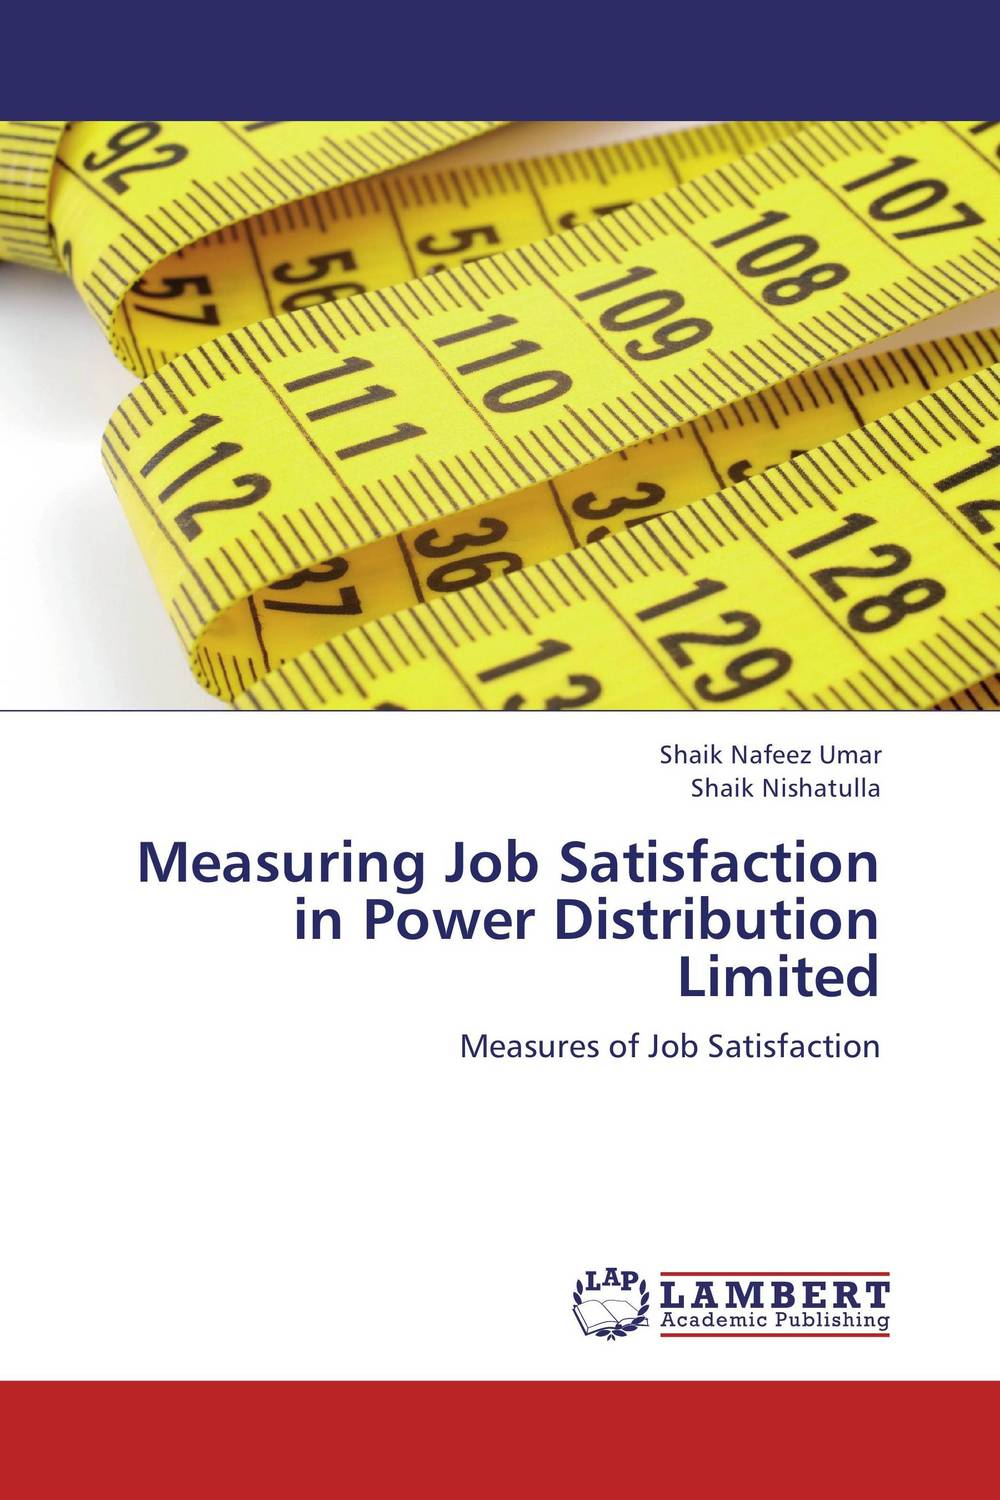 Measuring Job Satisfaction in Power Distribution Limited impact of job satisfaction on turnover intentions